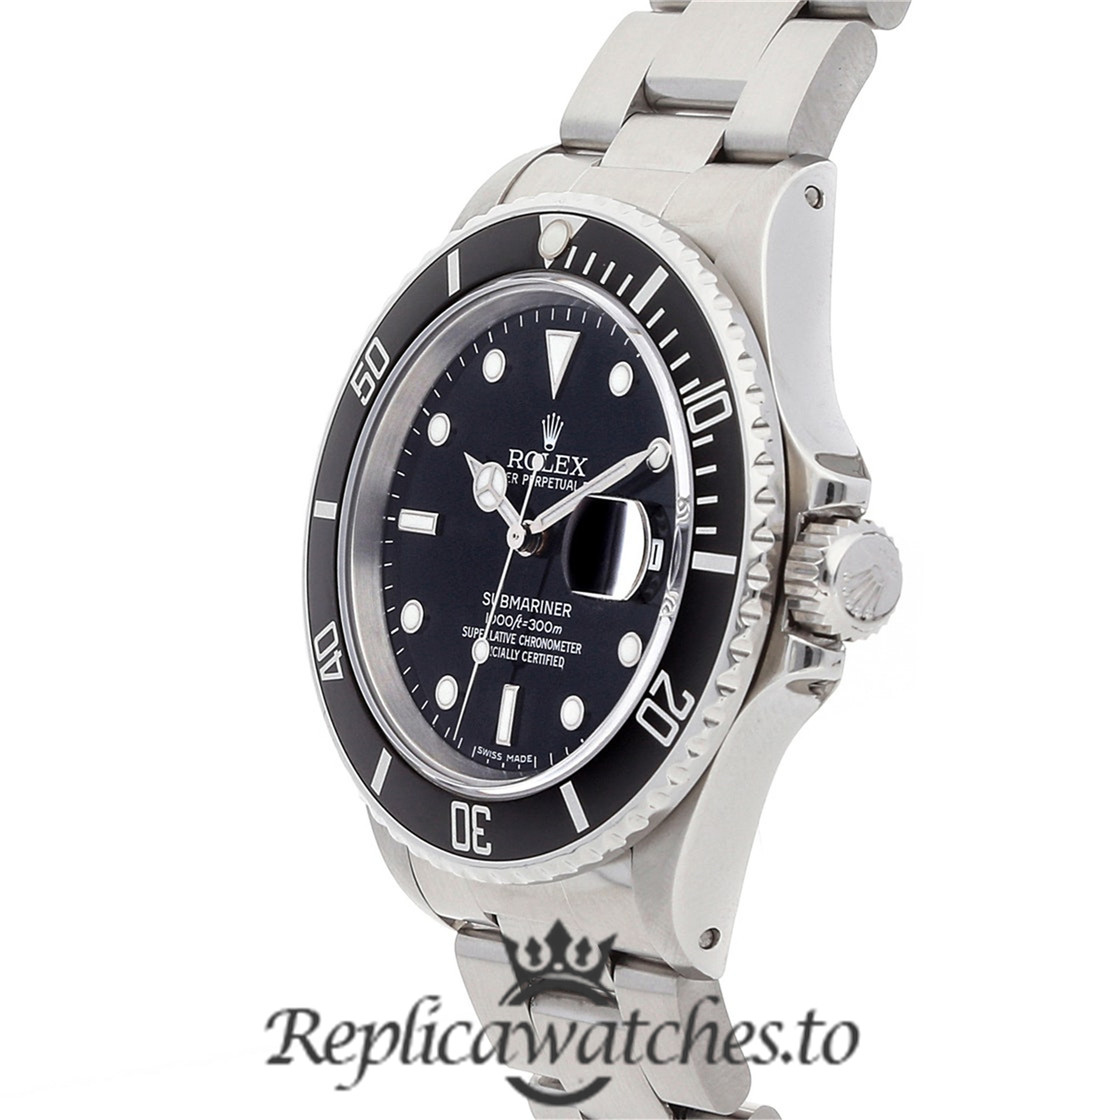 Rolex Submariner Replica 16800 Black Bezel 40MM